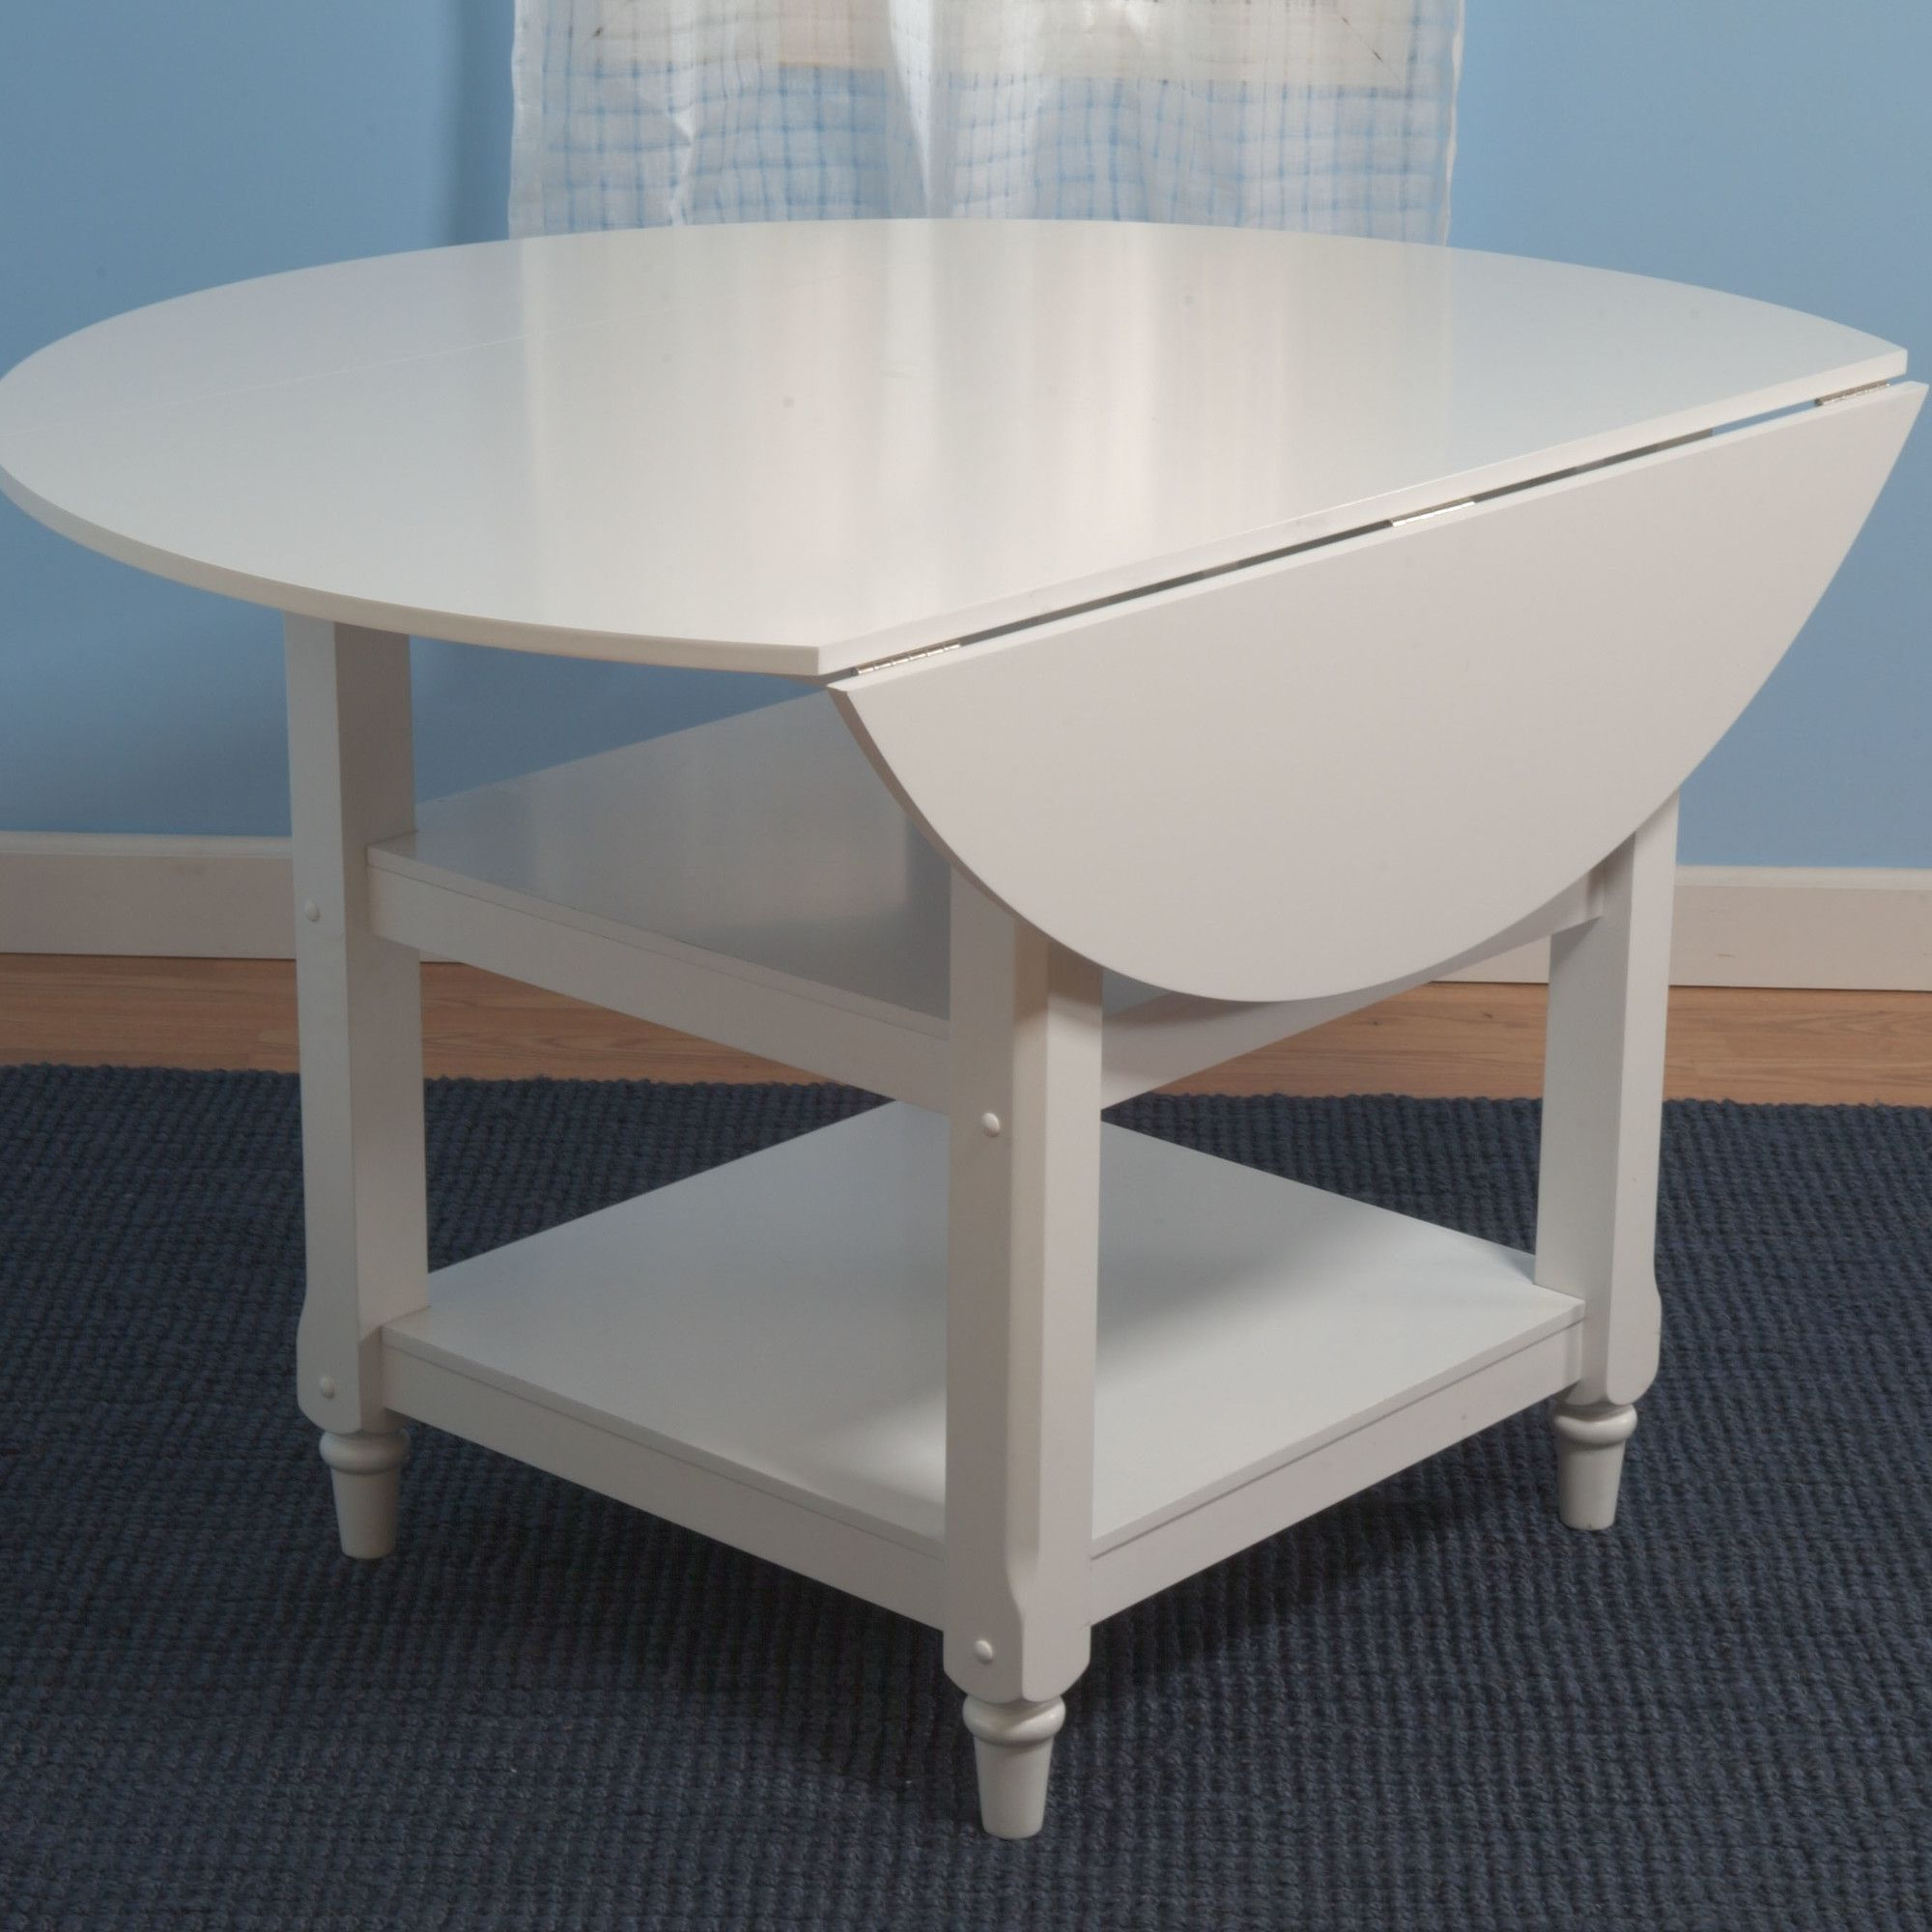 2019 Antique White Shayne Drop Leaf Kitchen Tables Inside Bristol Point Drop Leaf Dining Table In  (View 4 of 25)